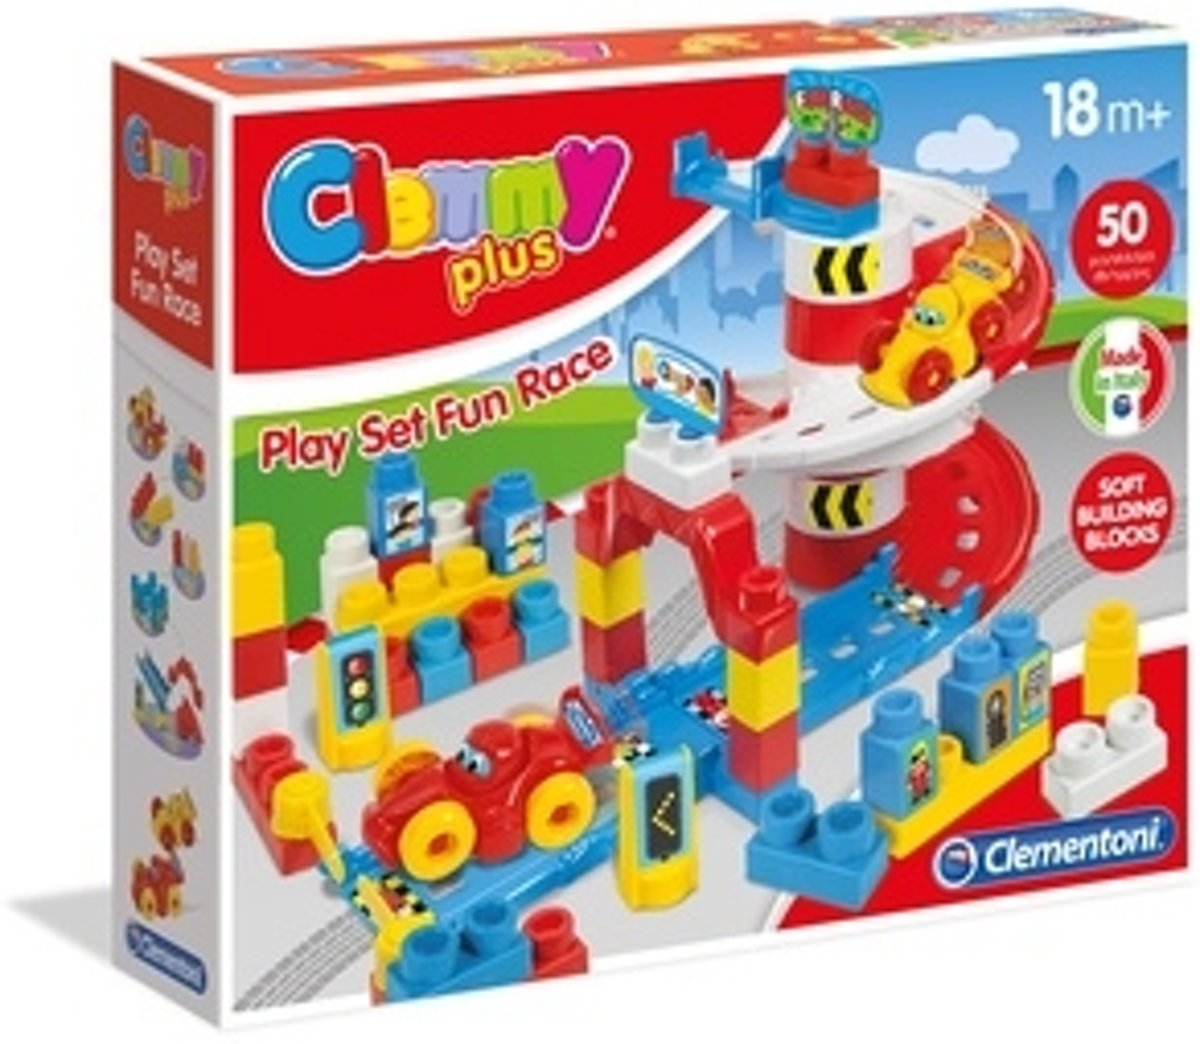 Clementoni Clemmy Plus Play Set- Fun Race Bouwpakket building toy